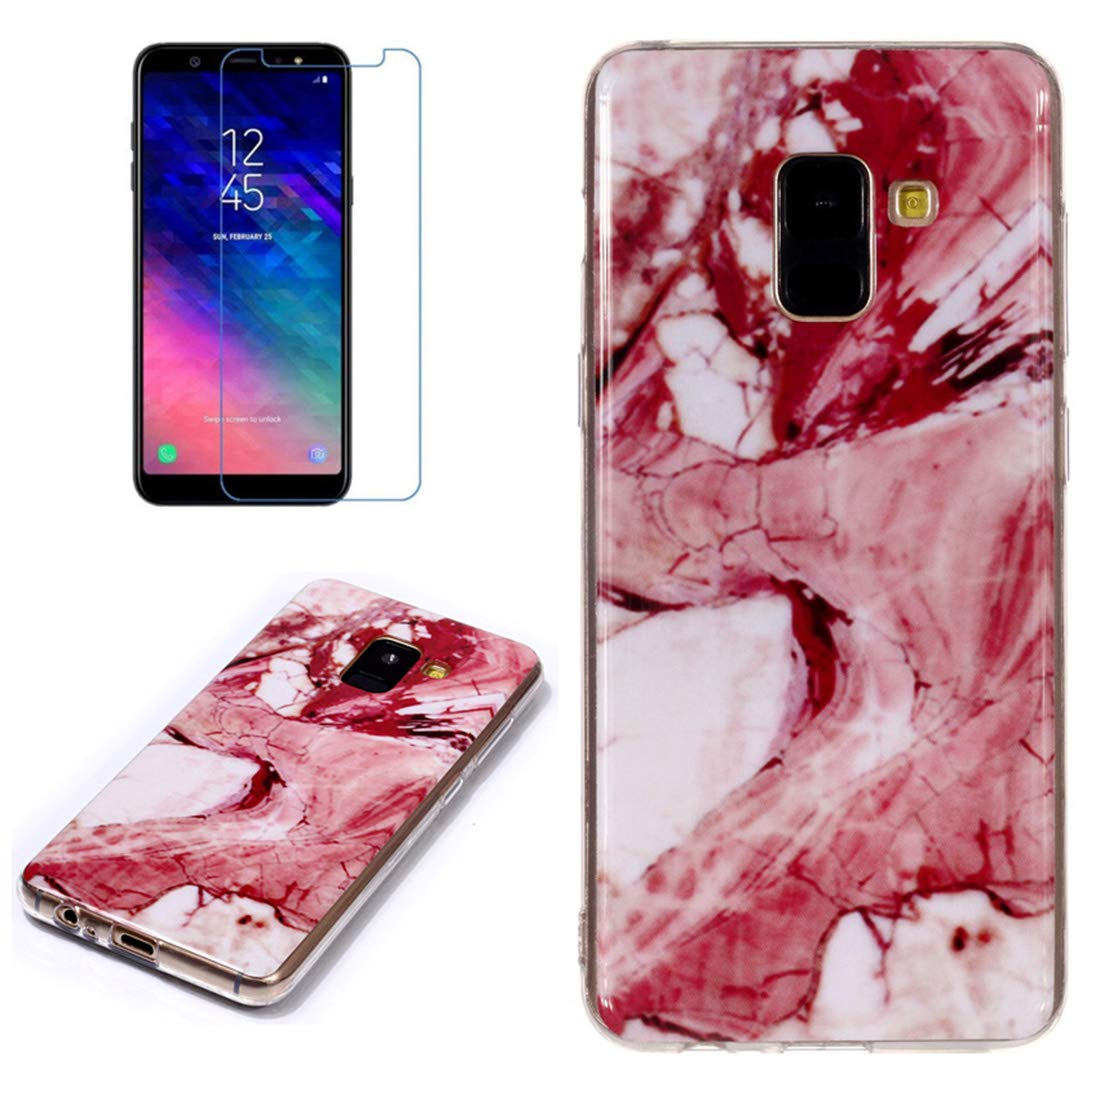 for Samsung Galaxy A6 Plus 2018 Marble Case with Screen Protector,Unique Pattern Design Skin Ultra Thin Slim Fit Soft Gel Silicone Case,QFFUN Shockproof Anti-Scratch Protective Cover - Red Texture by QFFUN (Image #1)